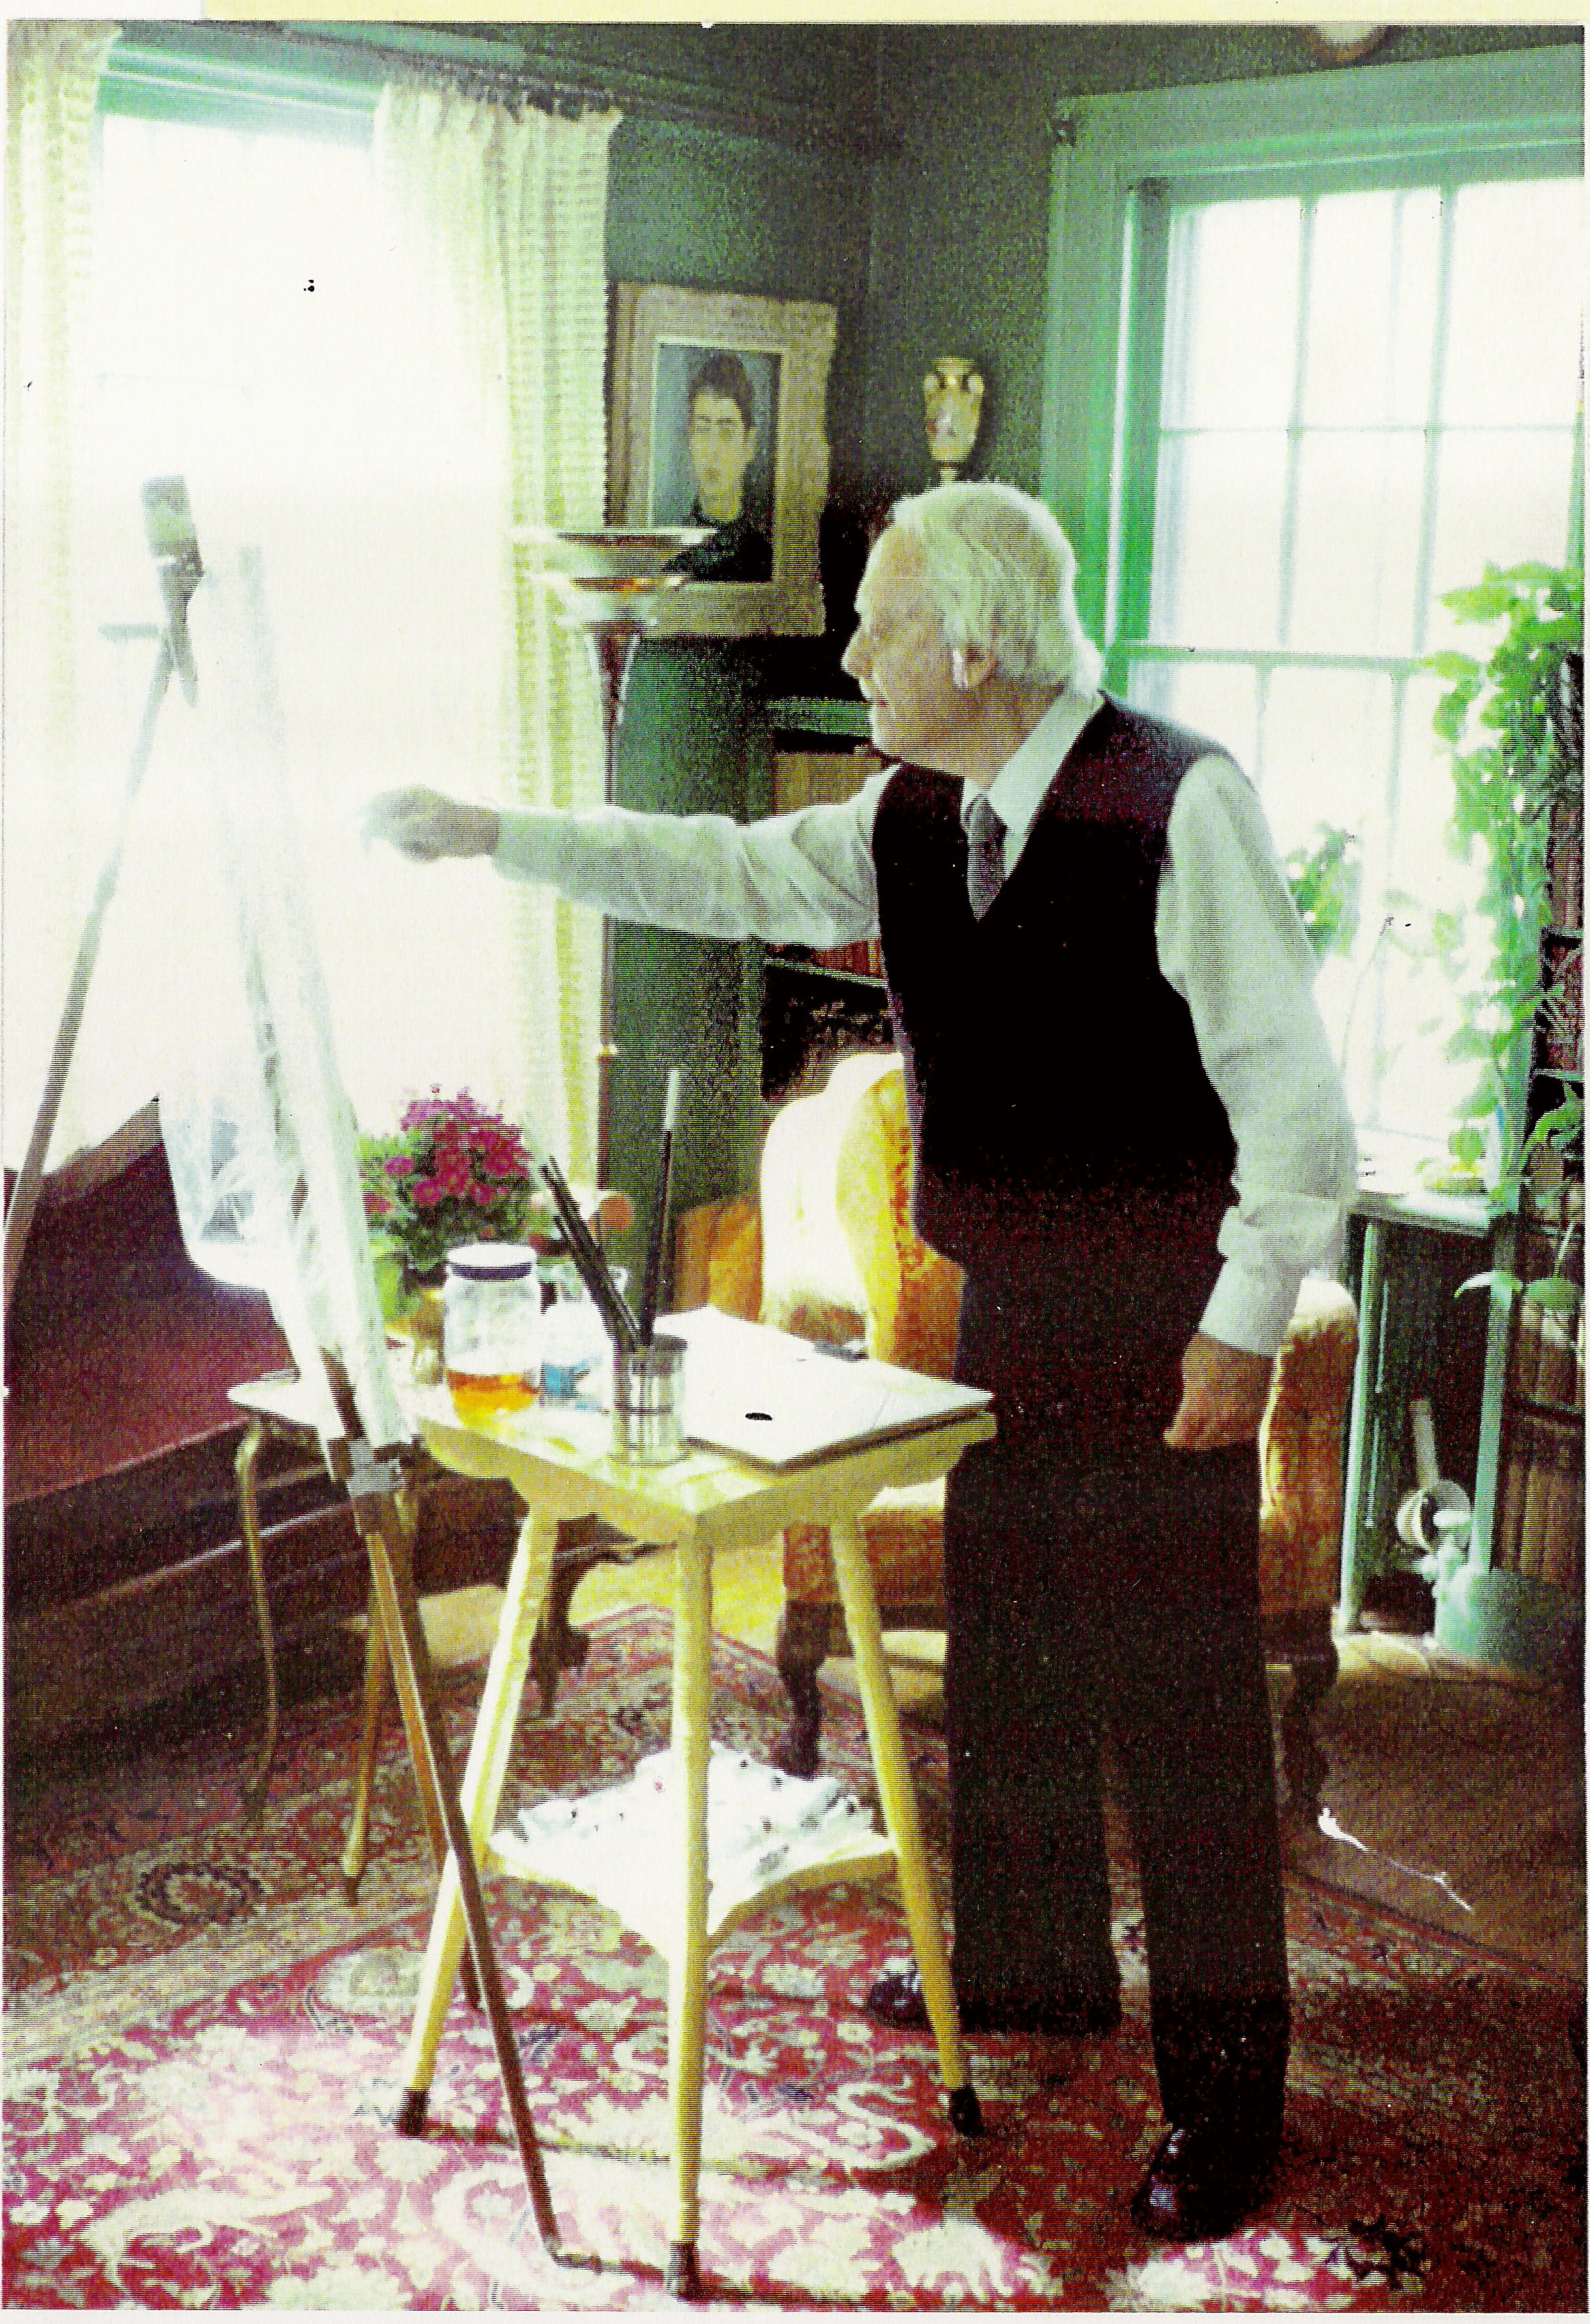 William Walton Armstrong painting at 42 Old Yonge St, 1990s.